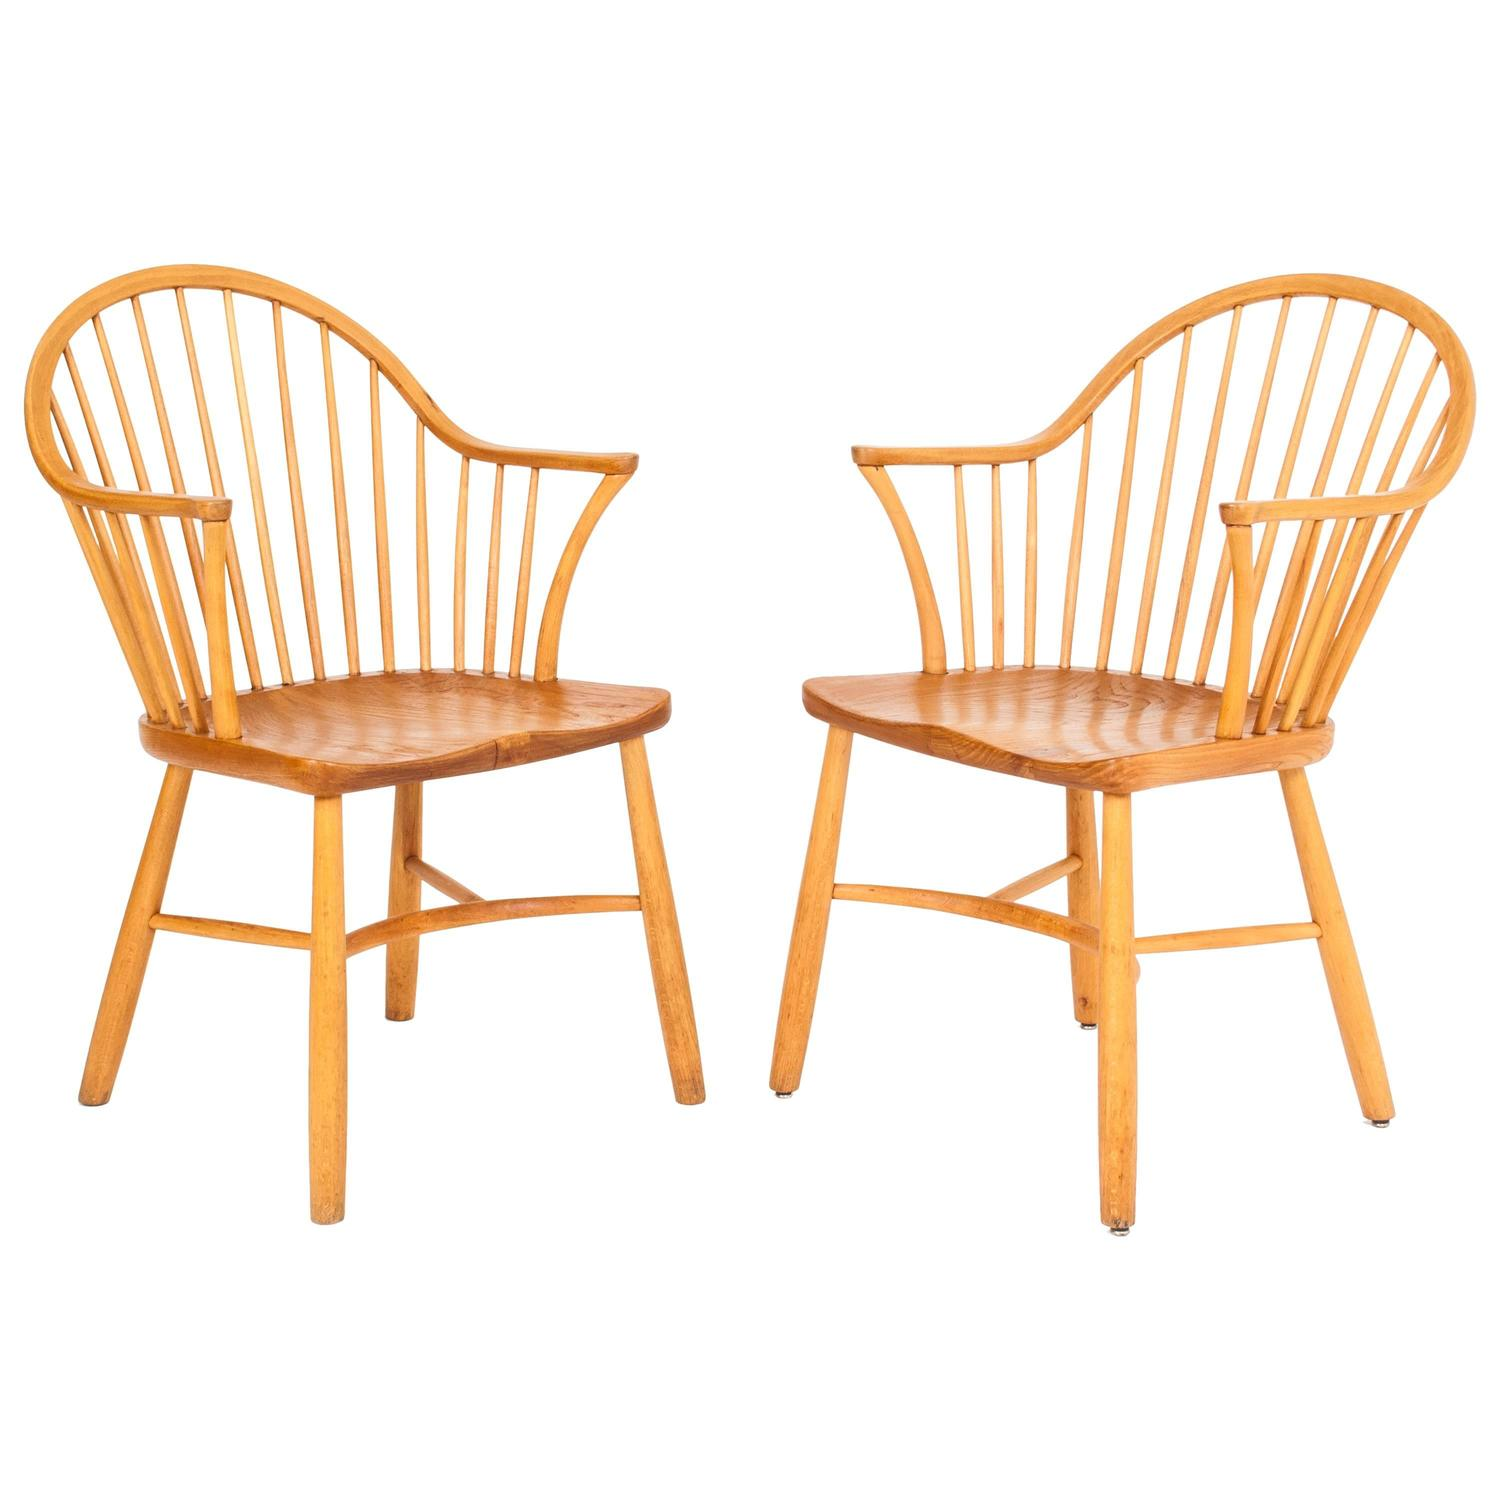 Palle Suenson Windsor Chairs For Sale at 1stdibs